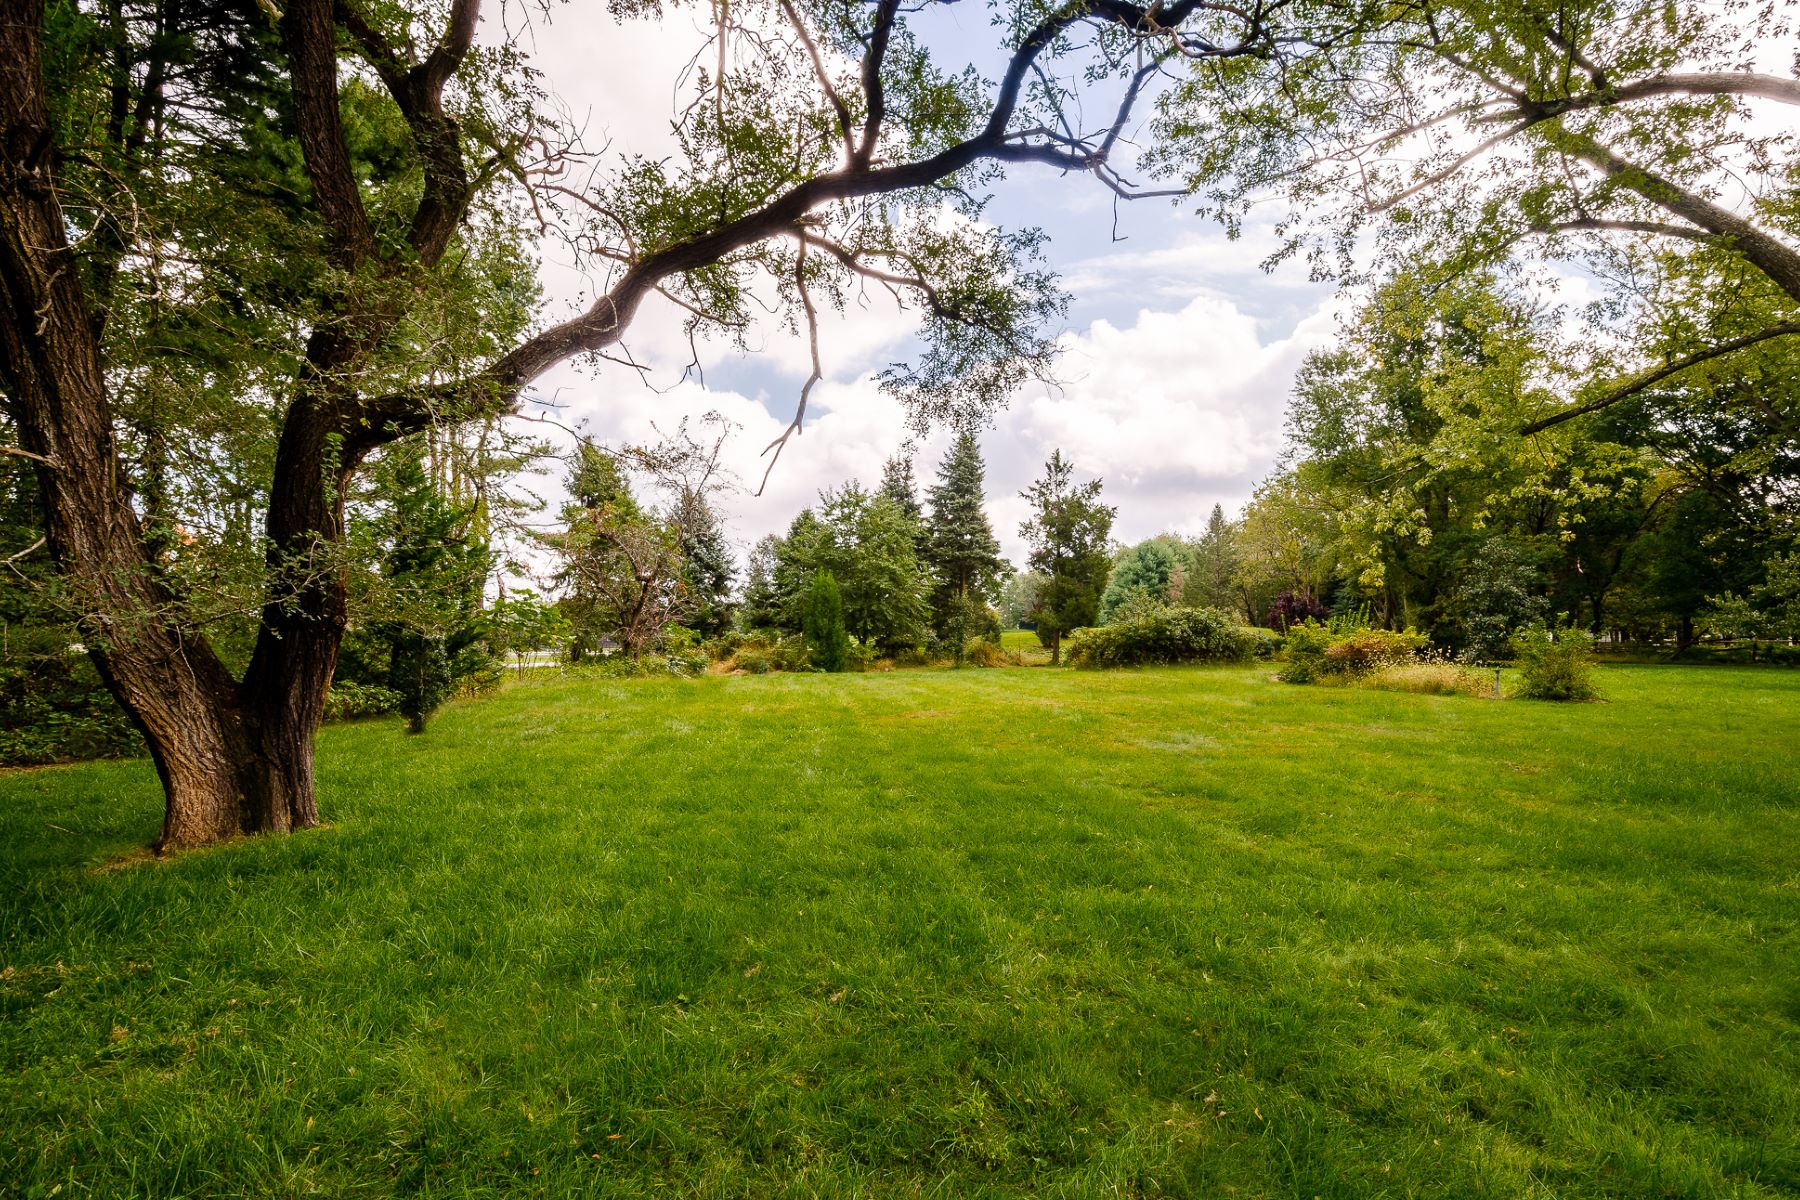 Land for Sale at Generous Land Lot in West Windsor Township 6A North Mill Road, West Windsor, New Jersey 08550 United States